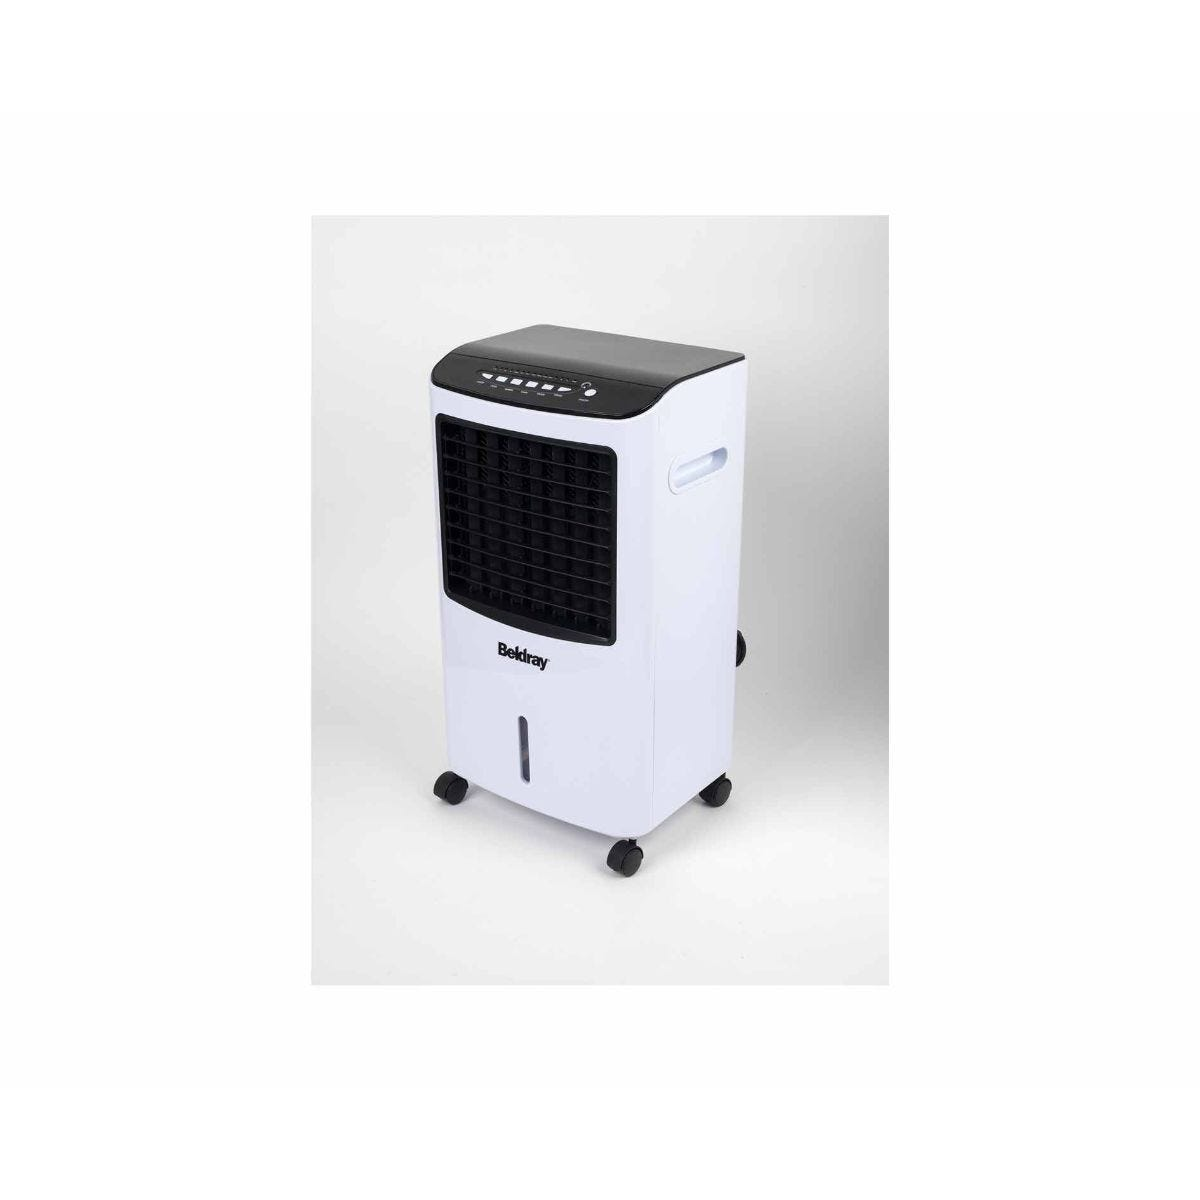 Beldray 4 in 1 Air Cooler with Remote